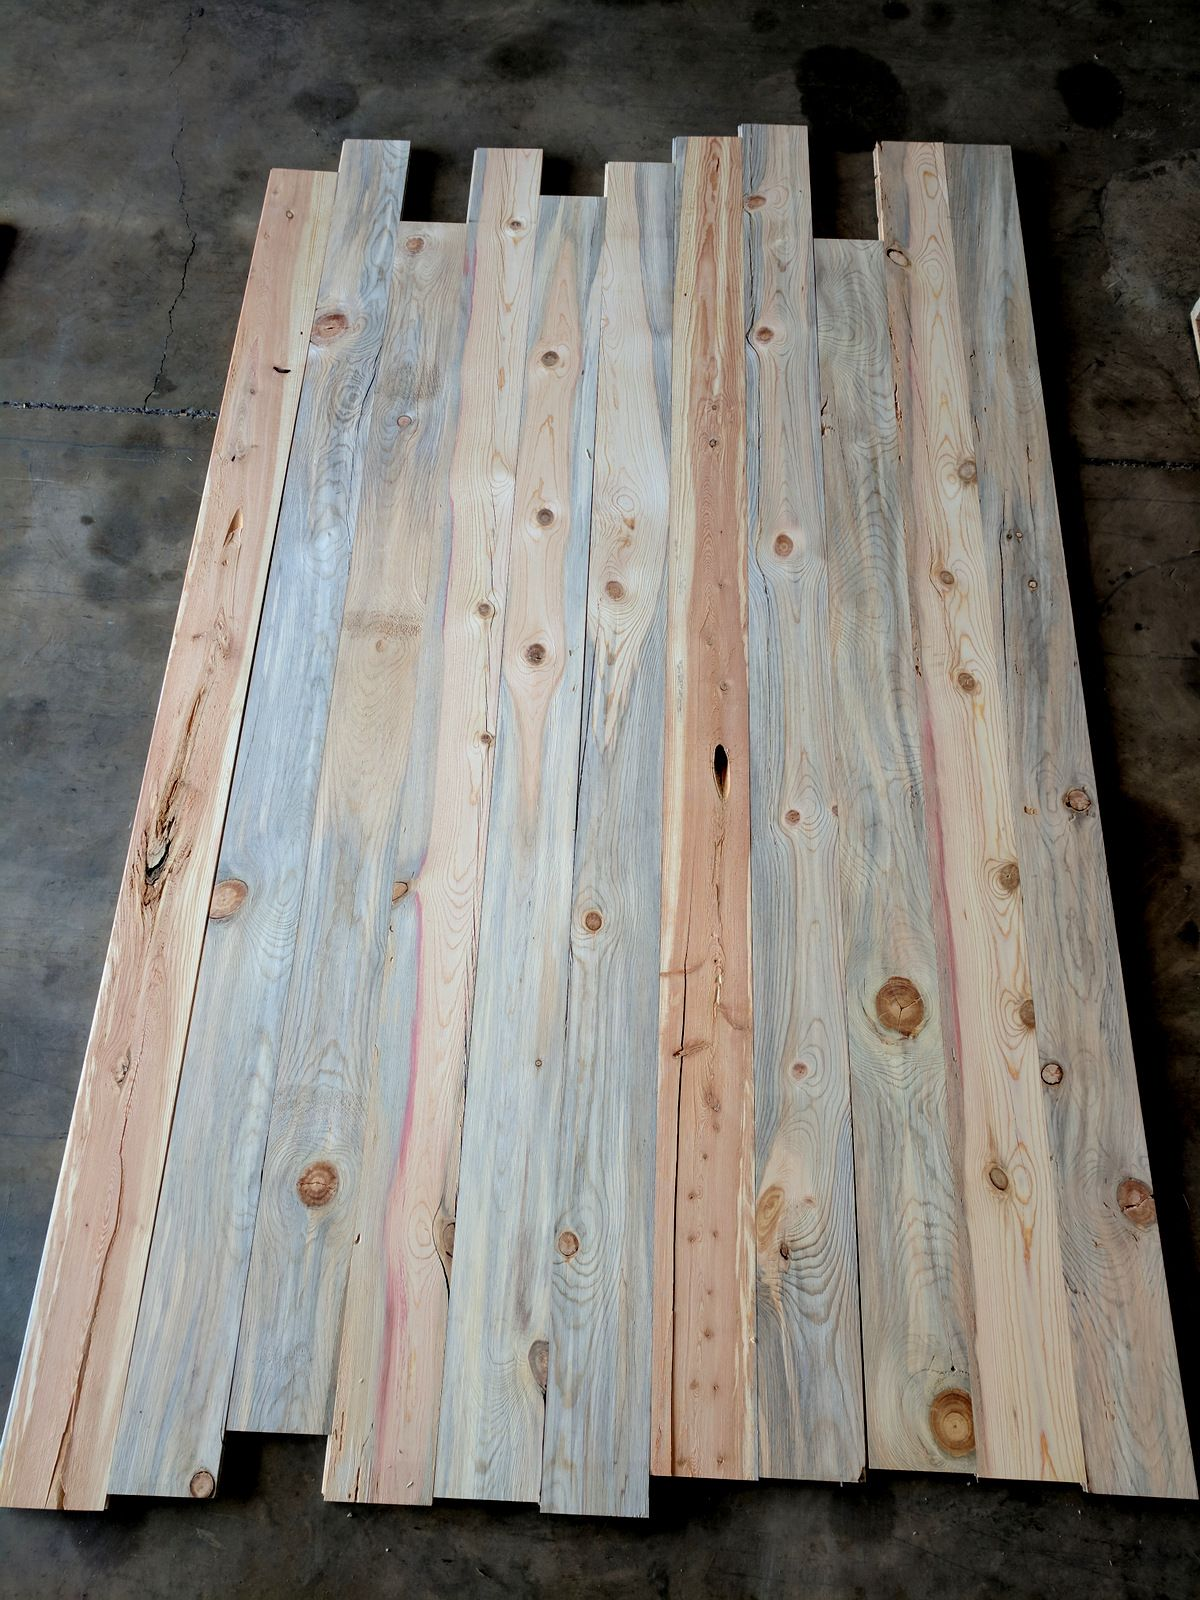 Beetle Kill Pine Special Unfinished 1x6 Cabin Grade Beetle Kill Pine At 1 99 Per Sq Ft These Boar Beetle Kill Pine Reclaimed Wood Floors Reclaimed Barn Wood